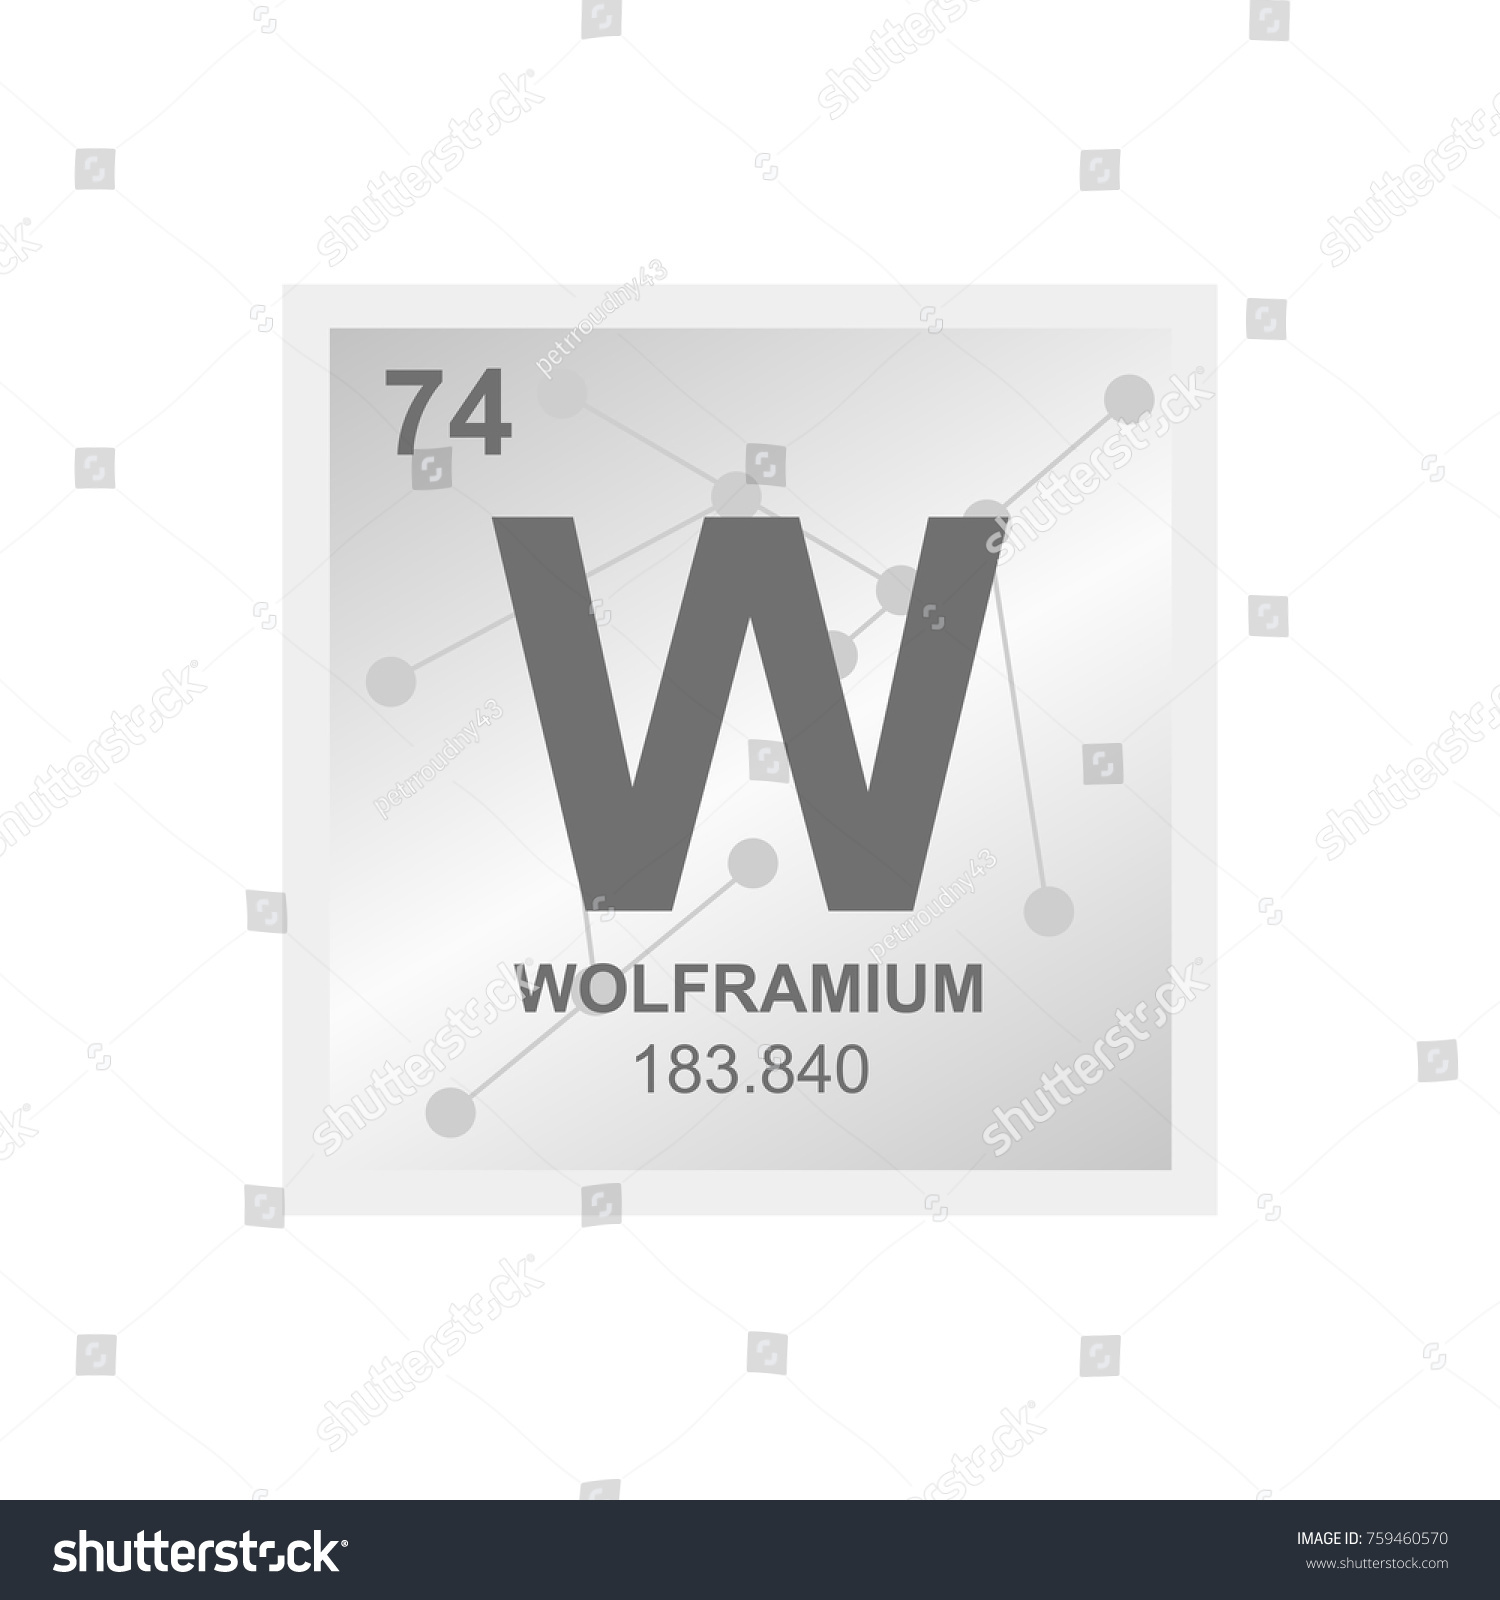 Aluminium symbol periodic table gallery periodic table images symbol for tungsten on periodic table image collections periodic vector symbol tungsten periodic table elements stock gamestrikefo Images